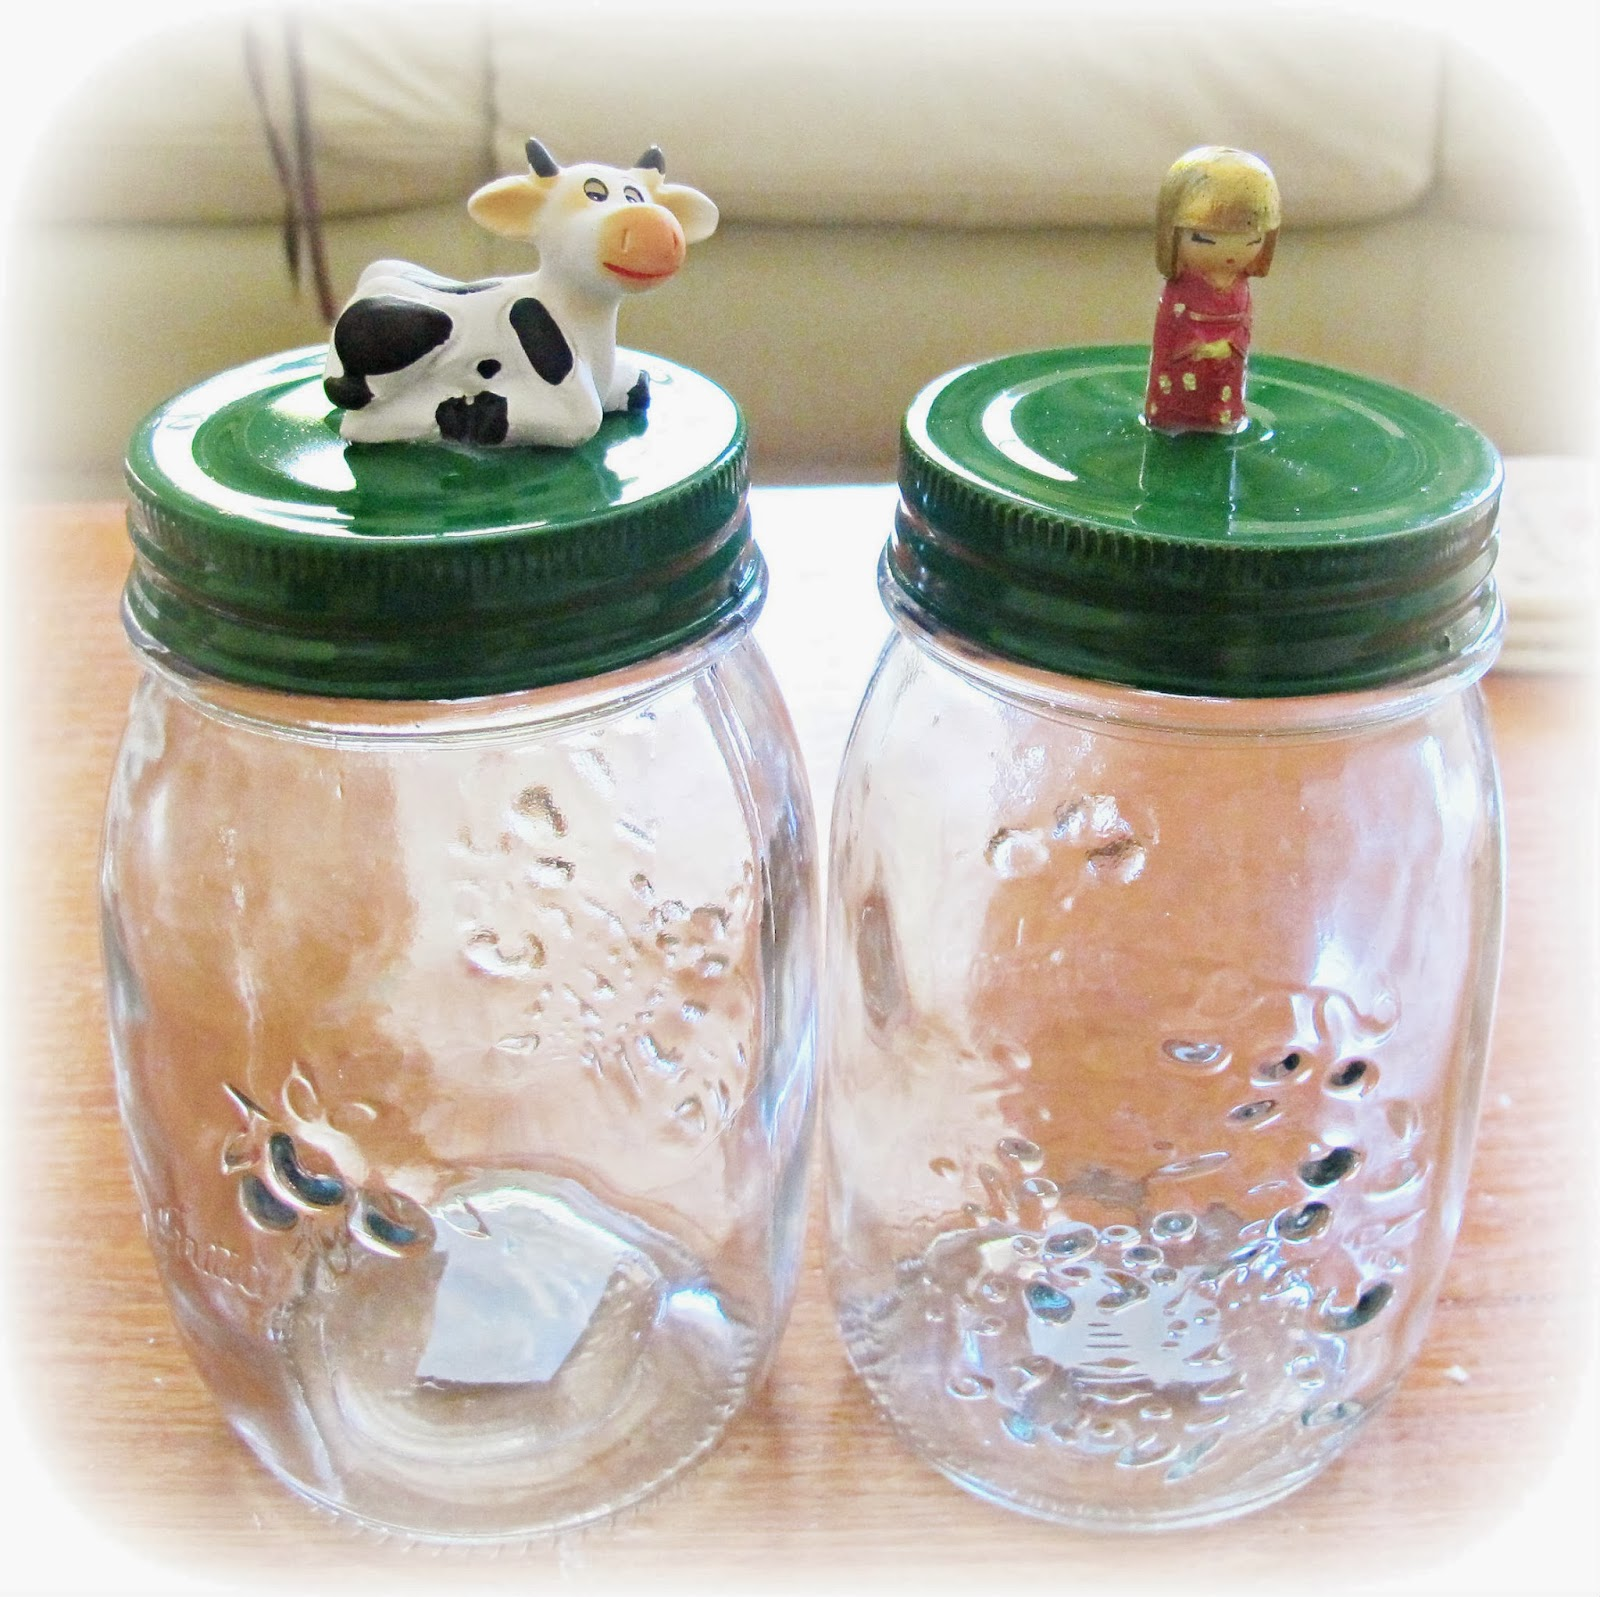 image tutorial diy decorated jars painted lids glue figurines to the painted lid